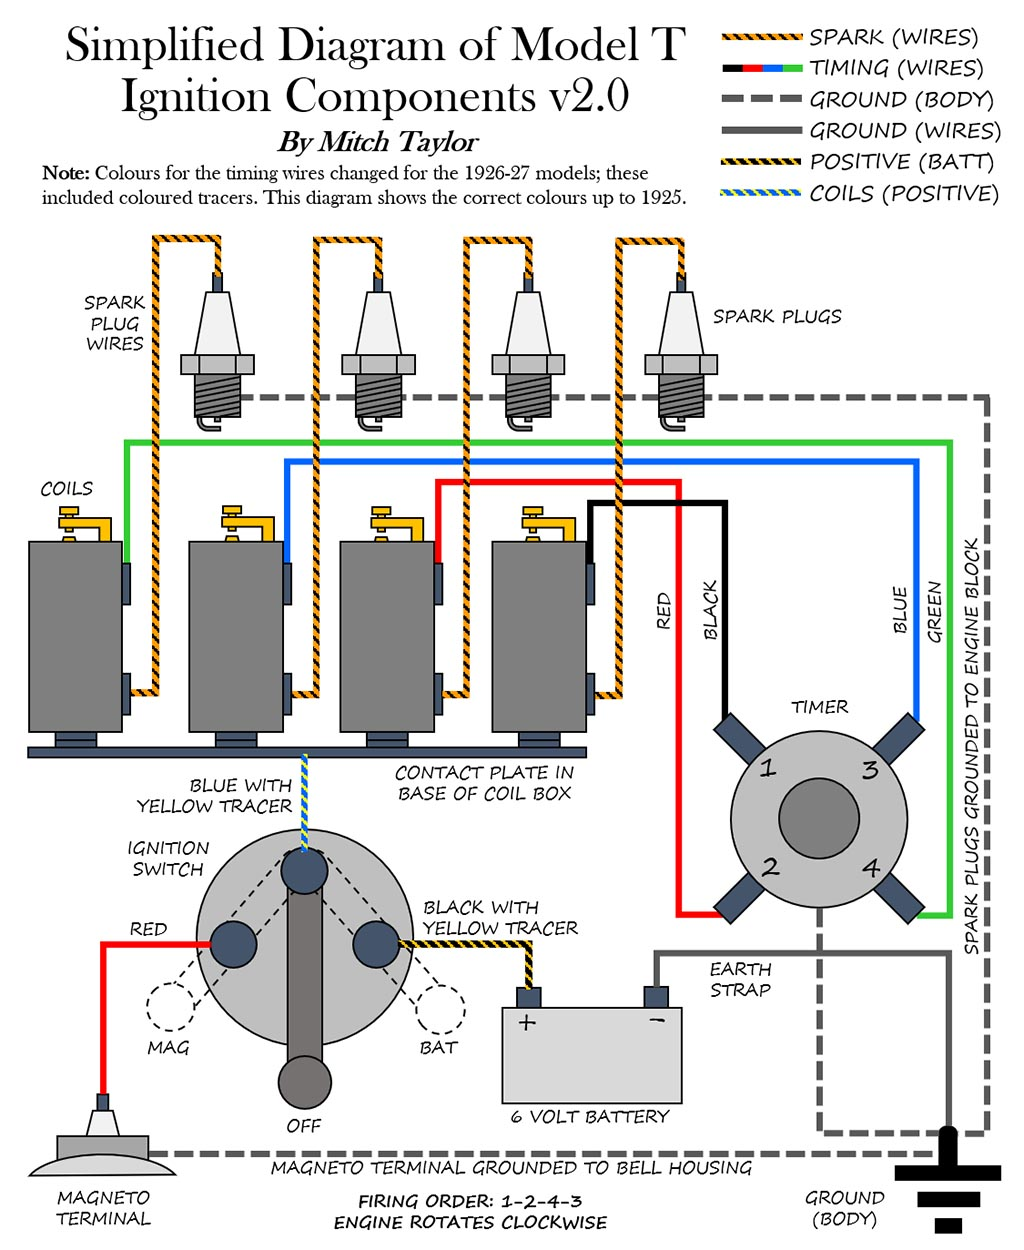 hight resolution of model t ford forum simplified diagram of model t ignition components img src http www mtfca com discus clipart happy gif alt border 0